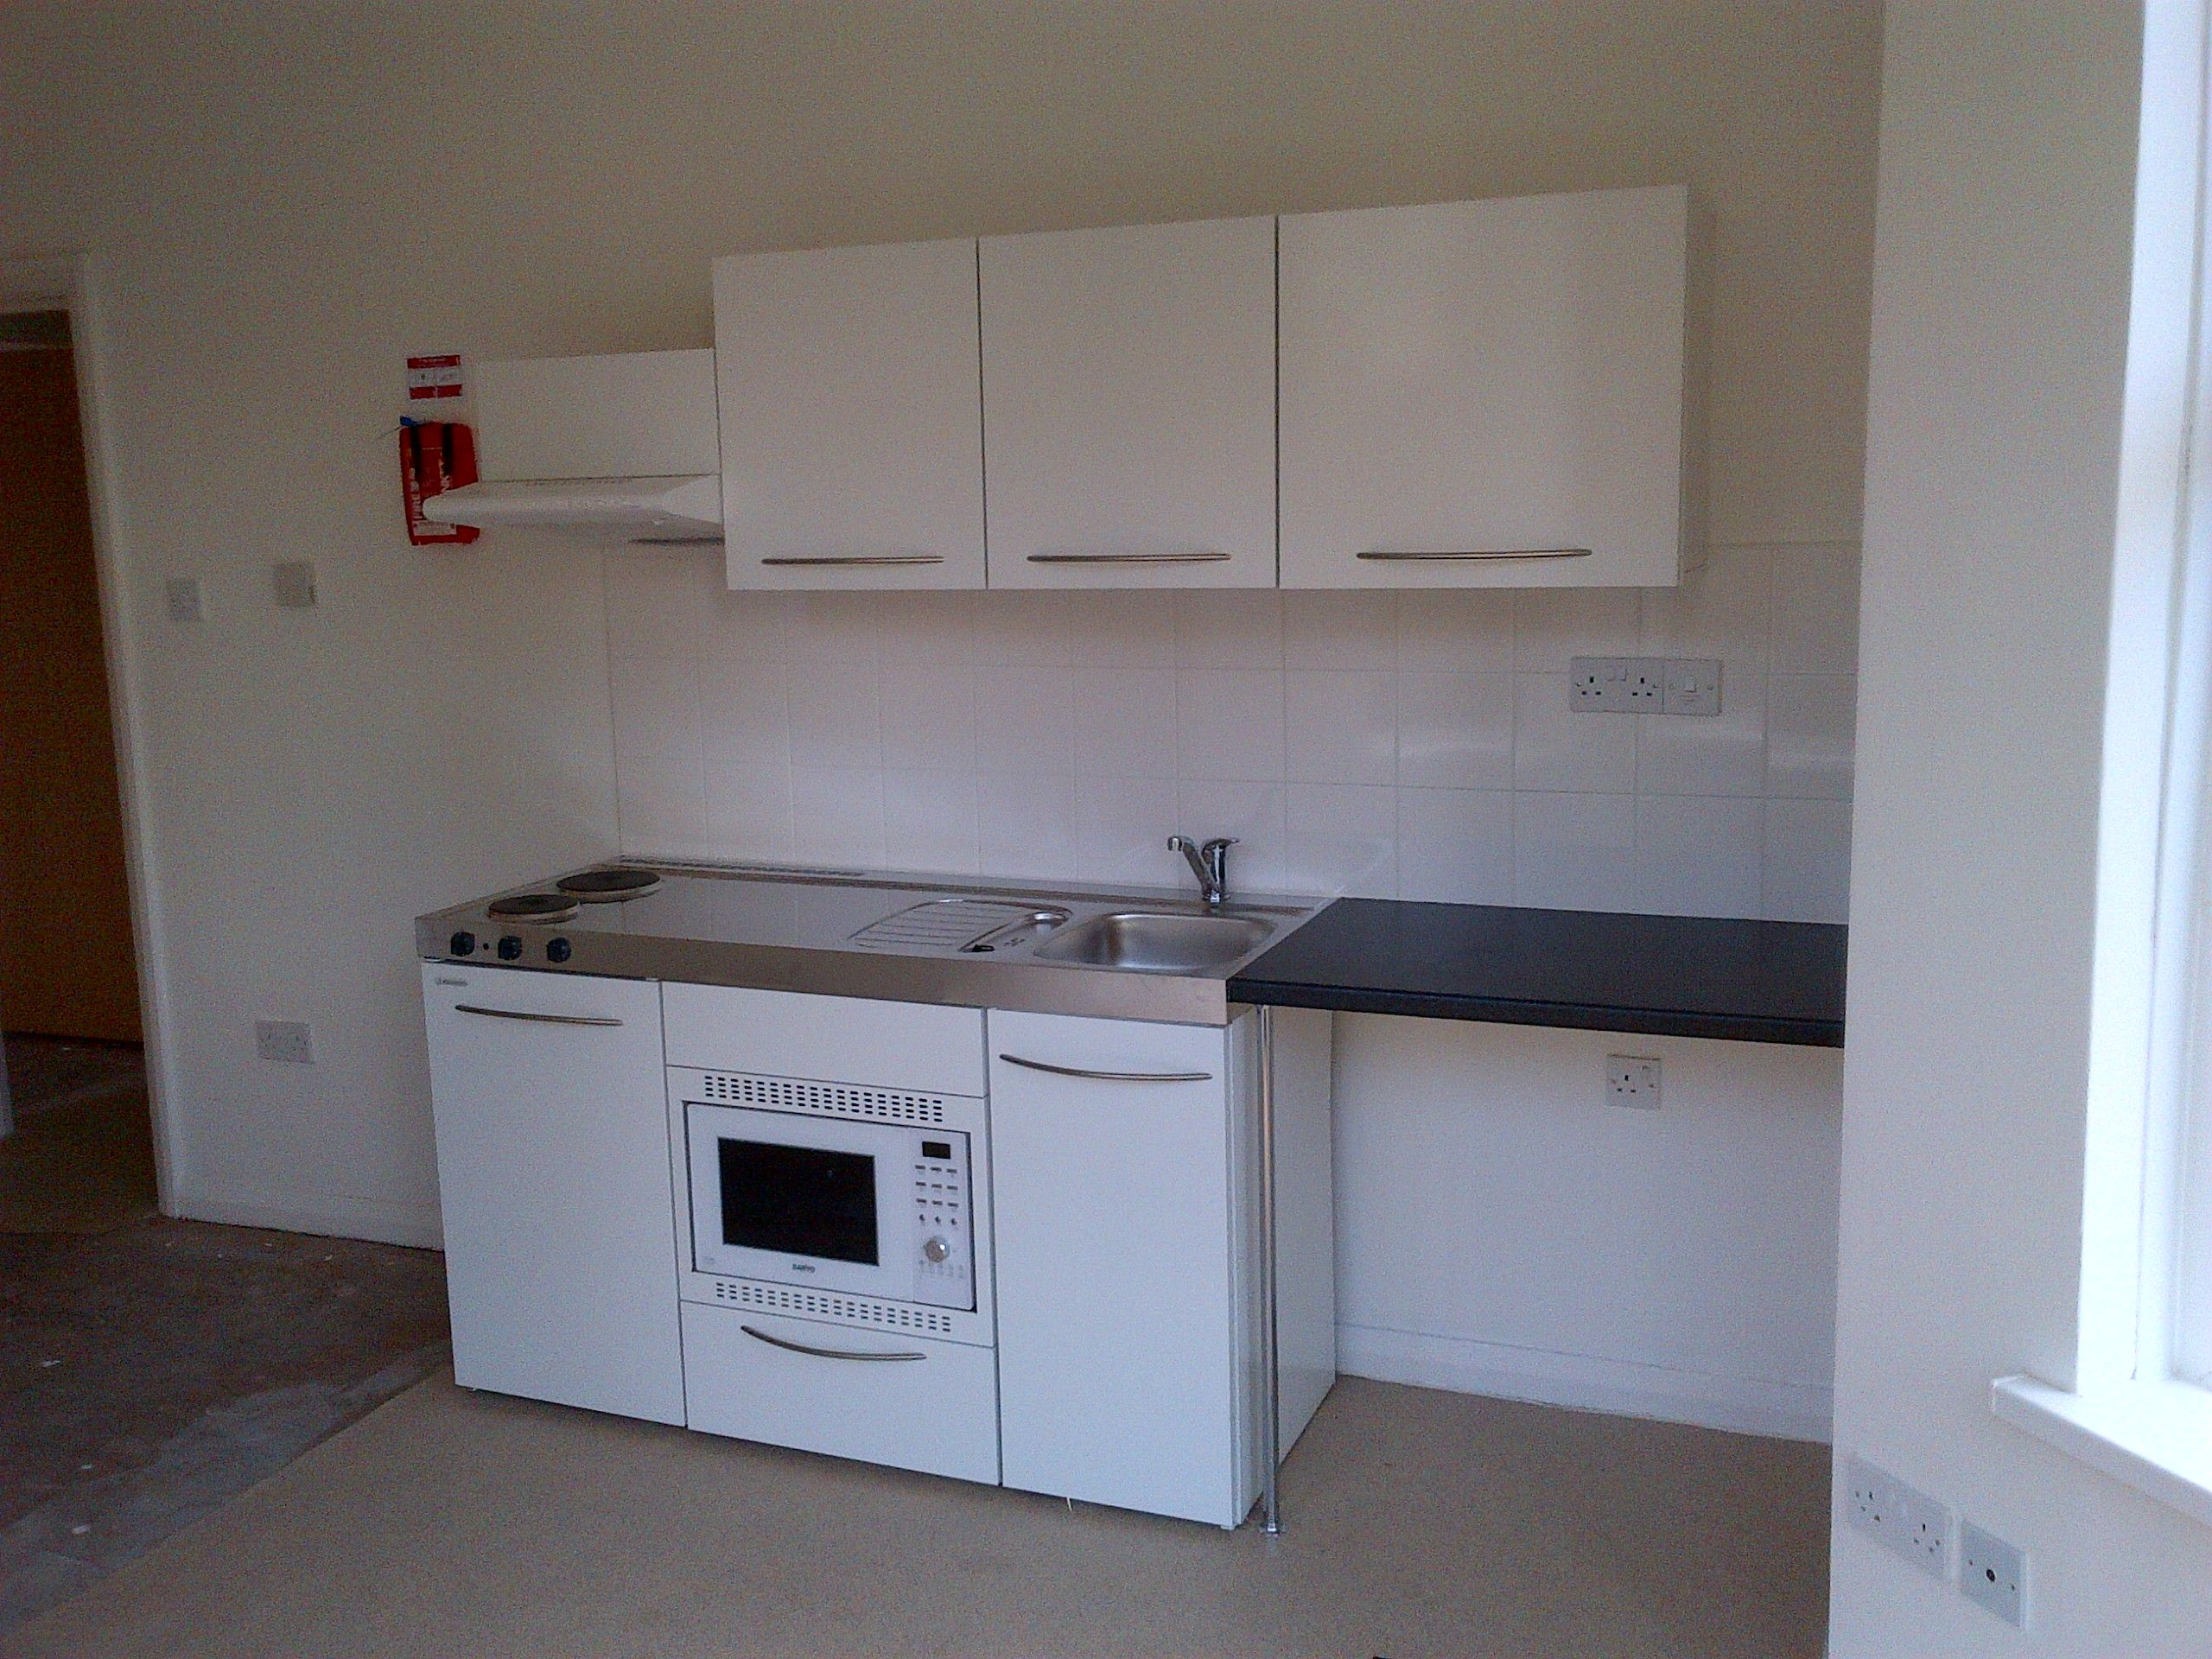 Studio Flat Luton Elfin Kitchens